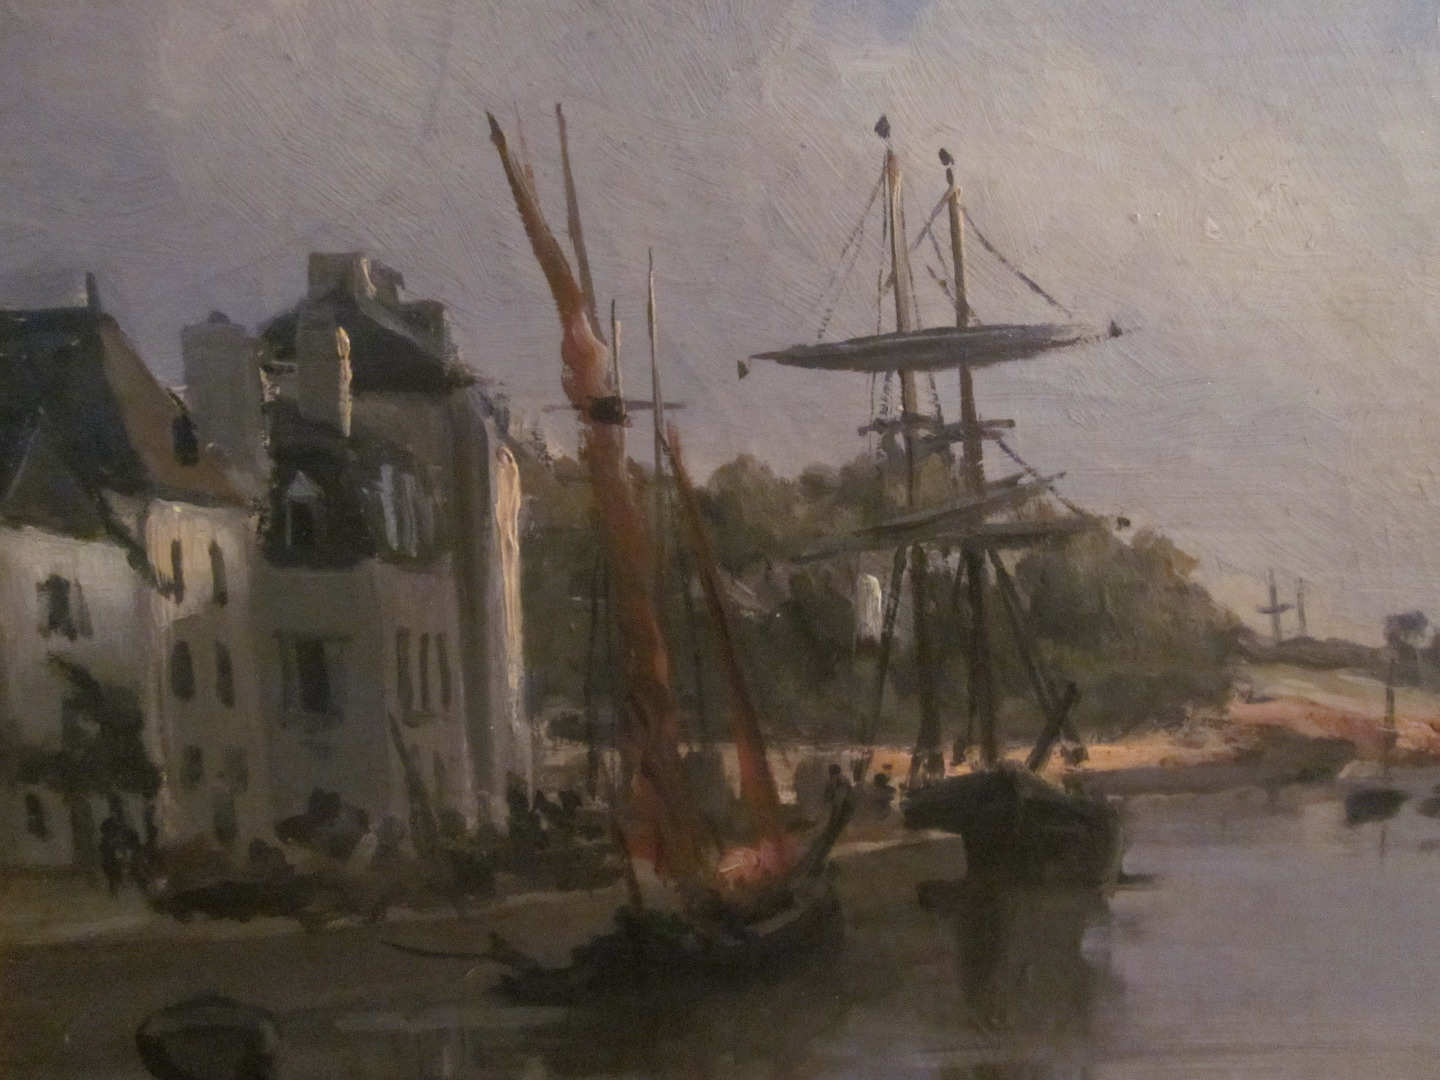 OIL ON CANVAS OF SAINT GOUSTAN, AURAY